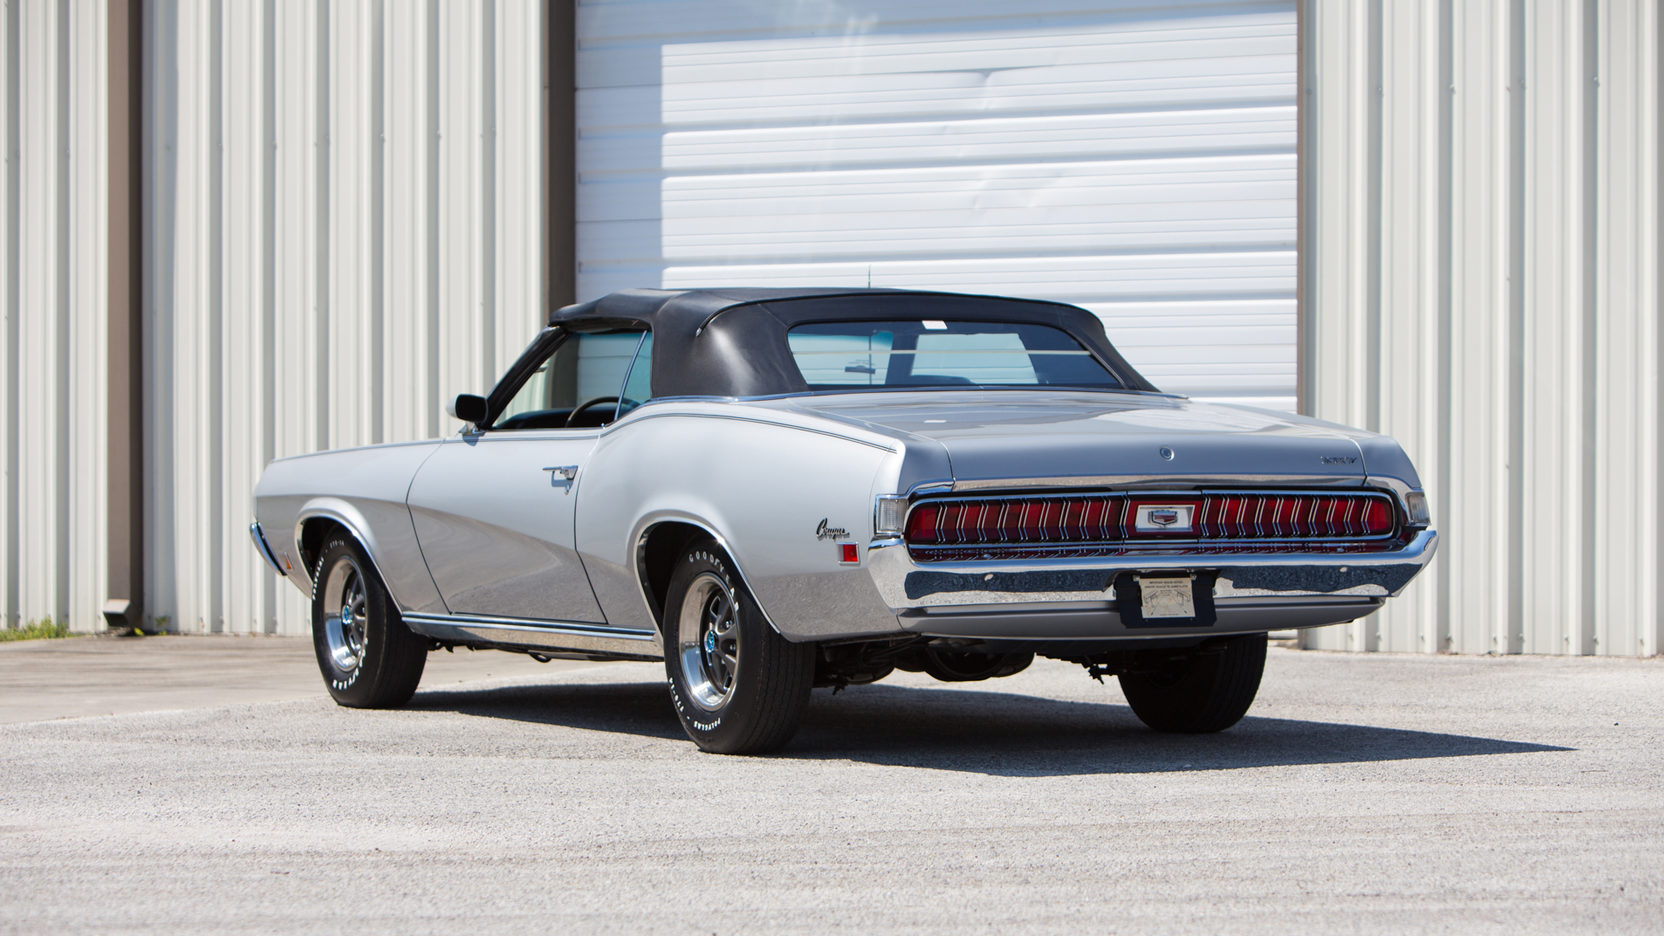 1970 Mercury Cougar XR-7 3/4 rear